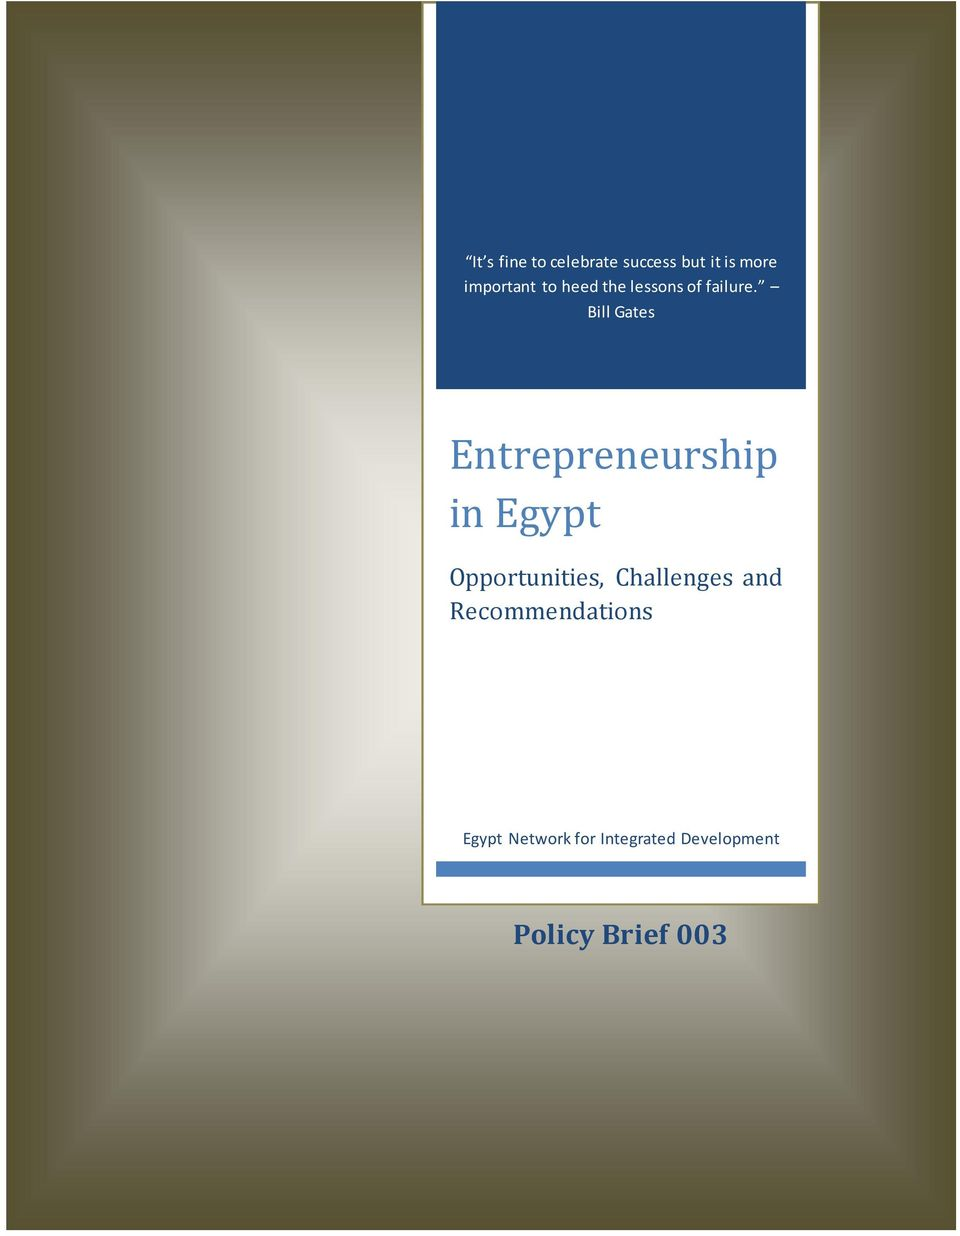 Bill Gates Entrepreneurship in Egypt Opportunities,